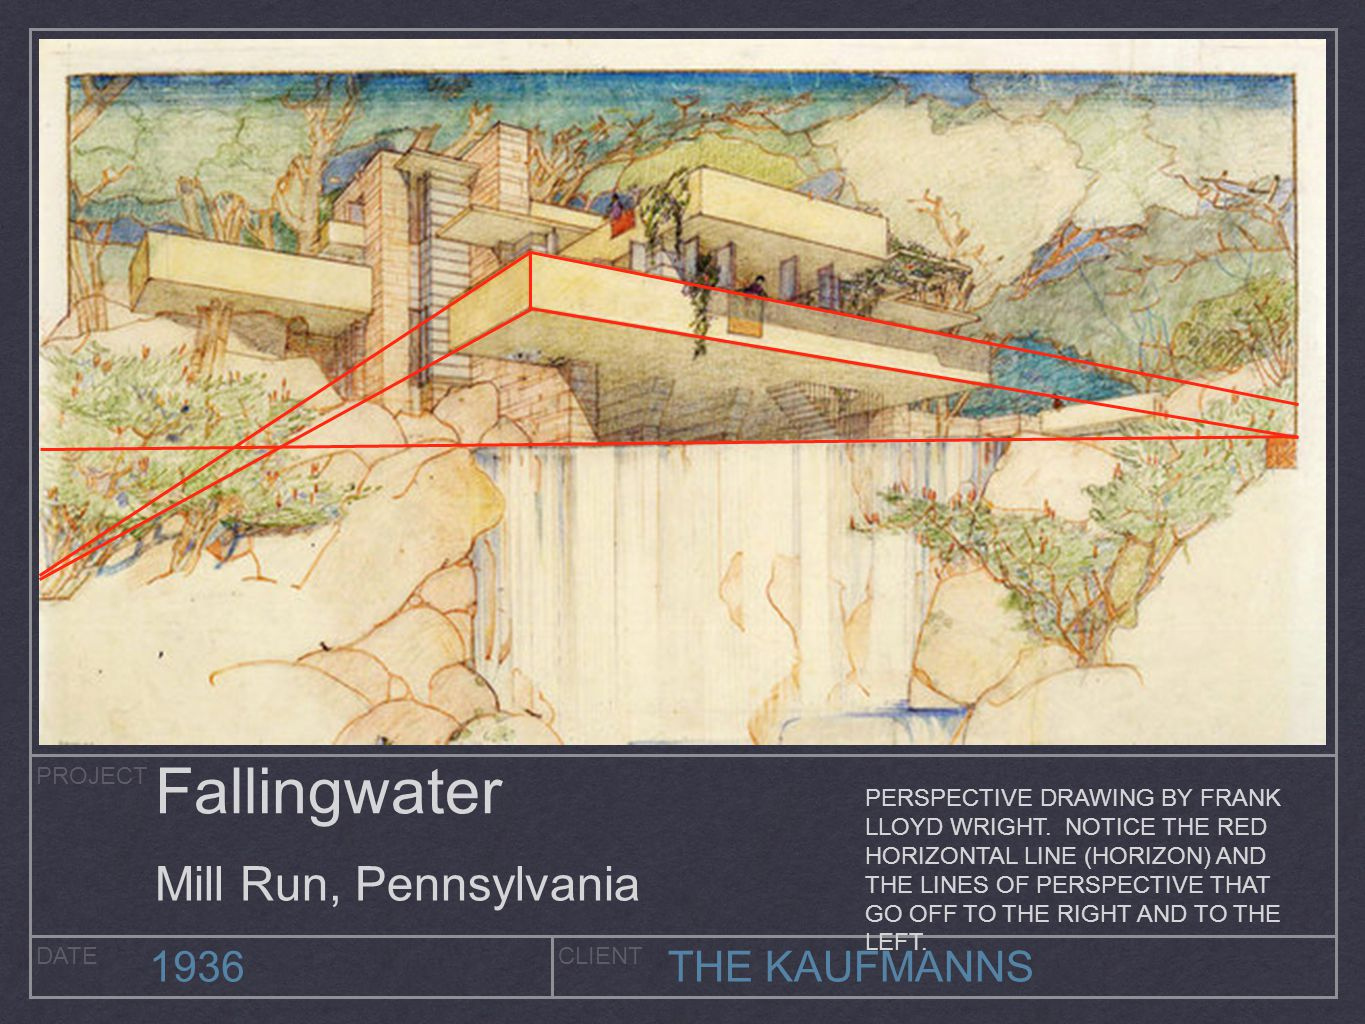 PROJECT DATECLIENT 1936THE KAUFMANNS Fallingwater Mill Run, Pennsylvania PERSPECTIVE DRAWING BY FRANK LLOYD WRIGHT.